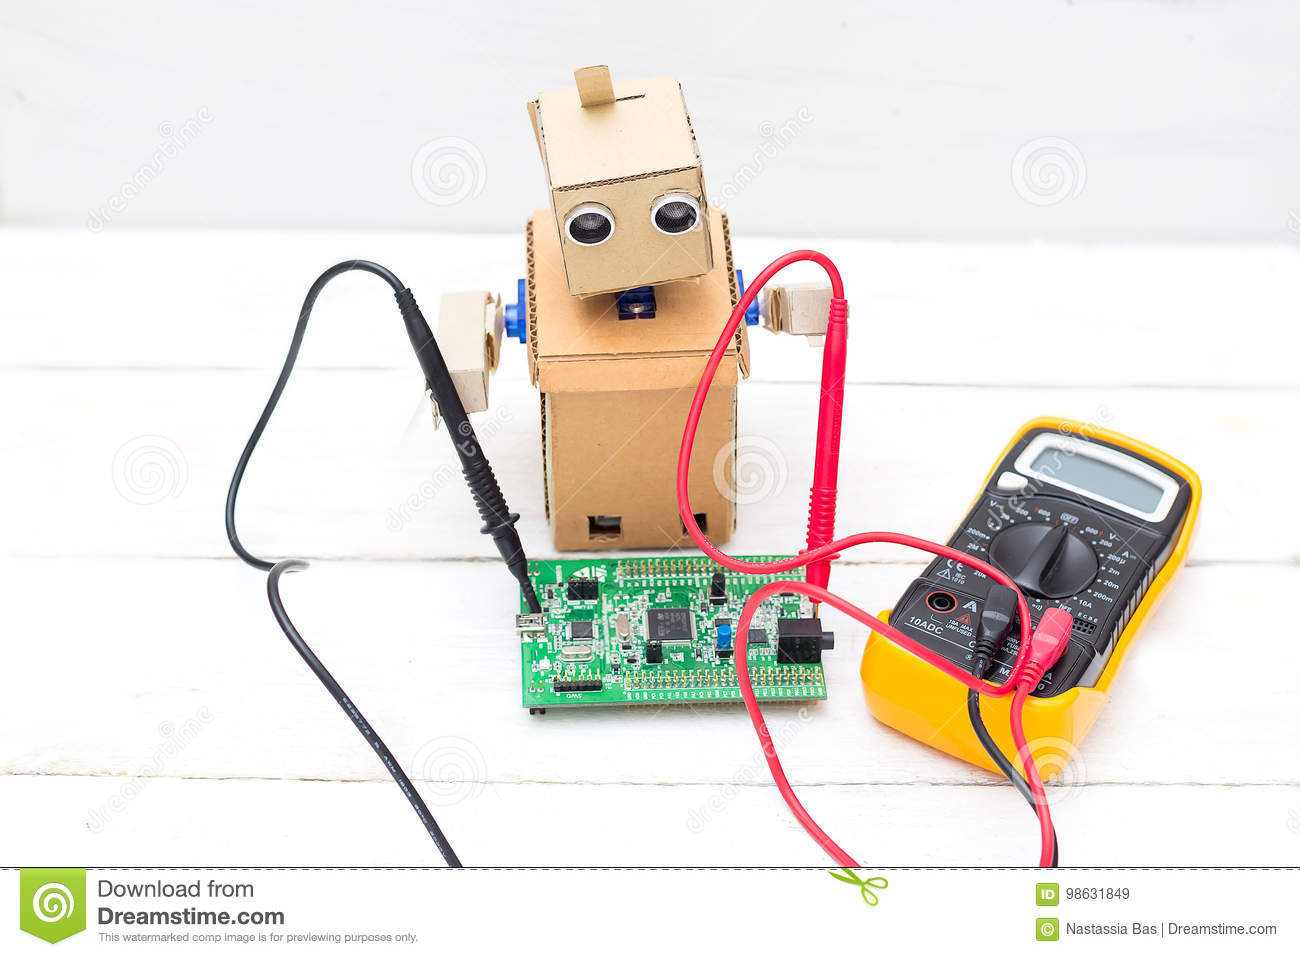 Summary Making Printed Circuit Boards Robot Room